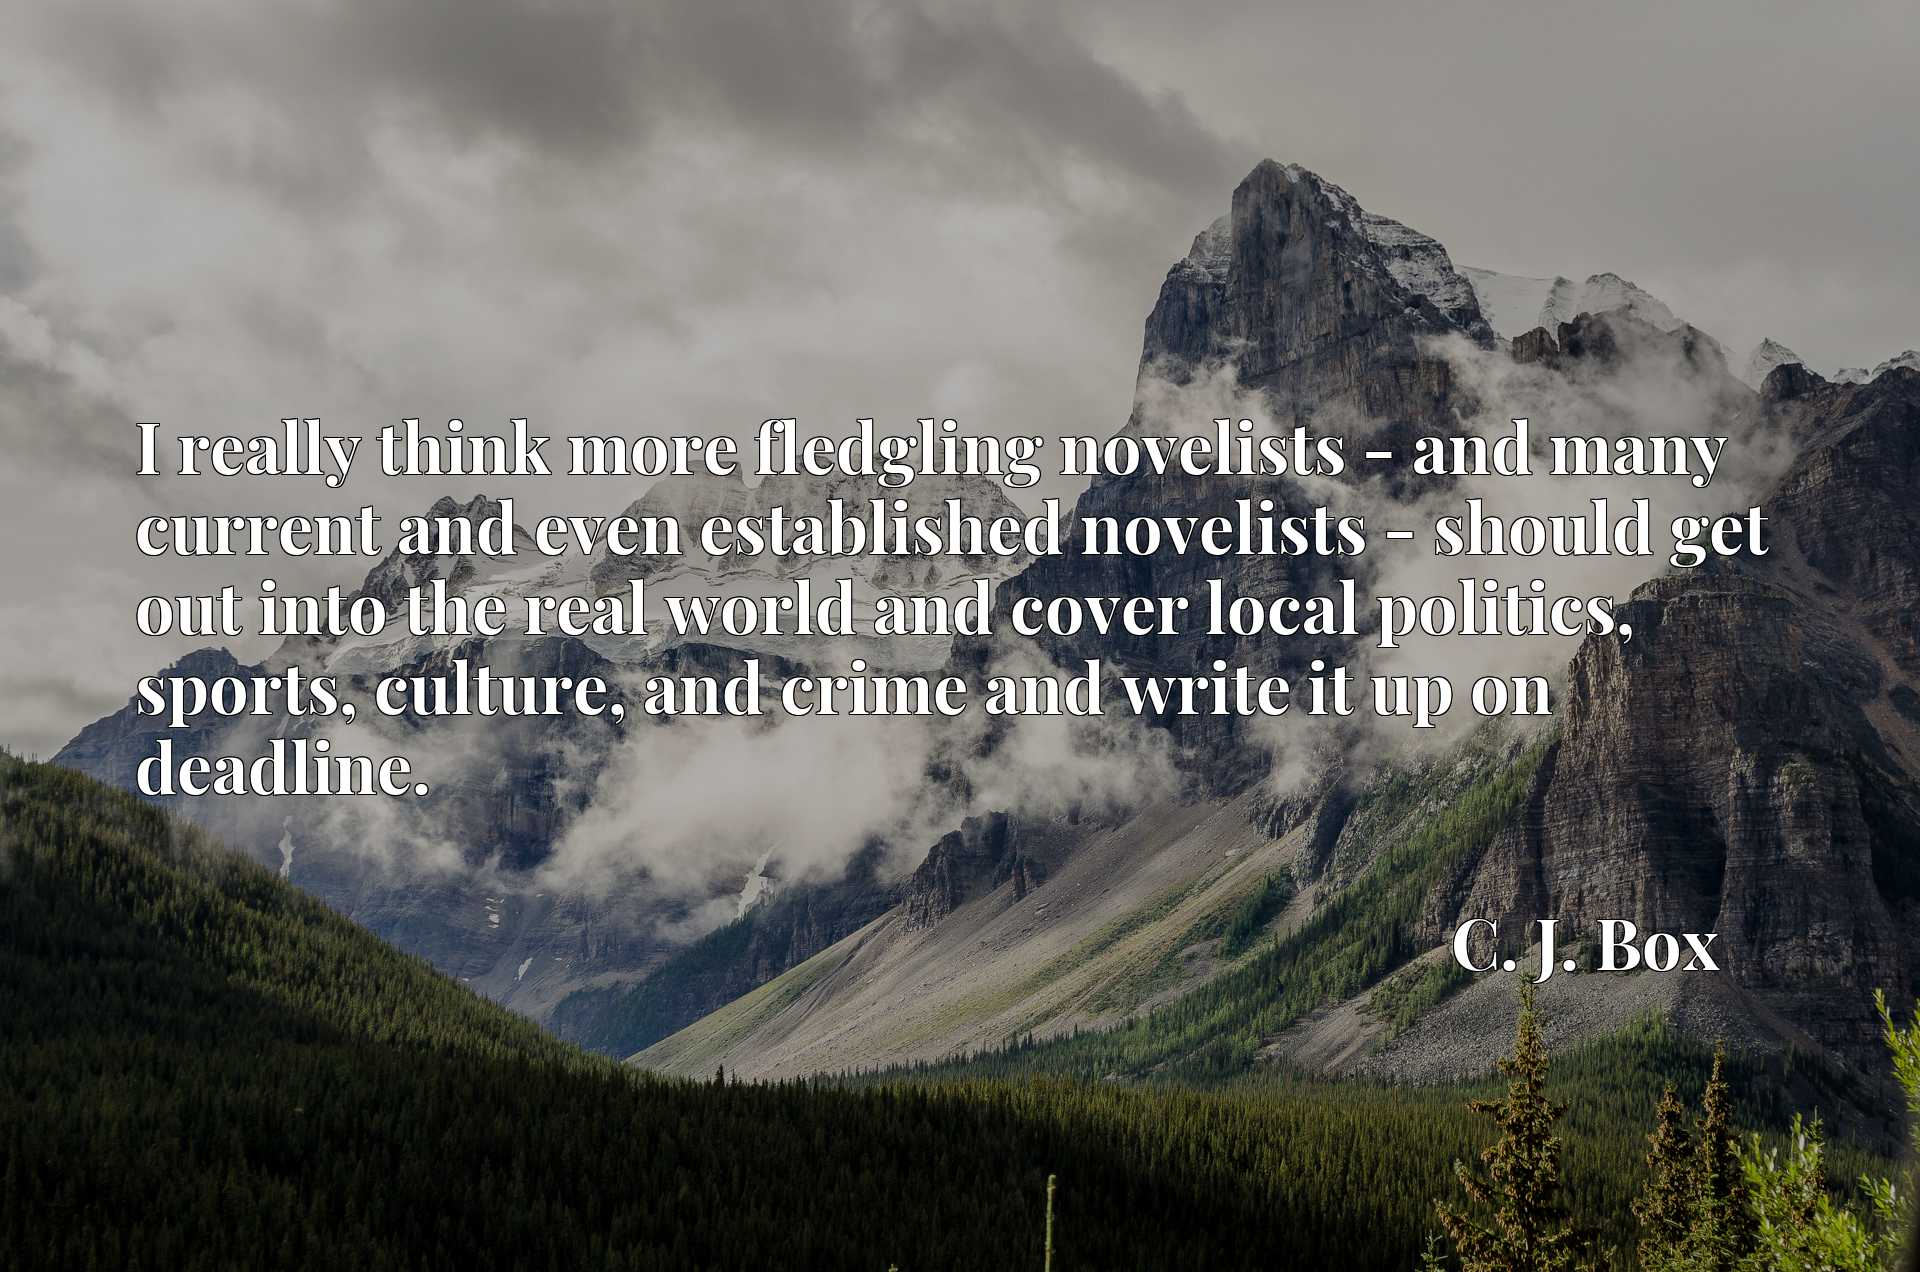 Quote Picture :I really think more fledgling novelists - and many current and even established novelists - should get out into the real world and cover local politics, sports, culture, and crime and write it up on deadline.